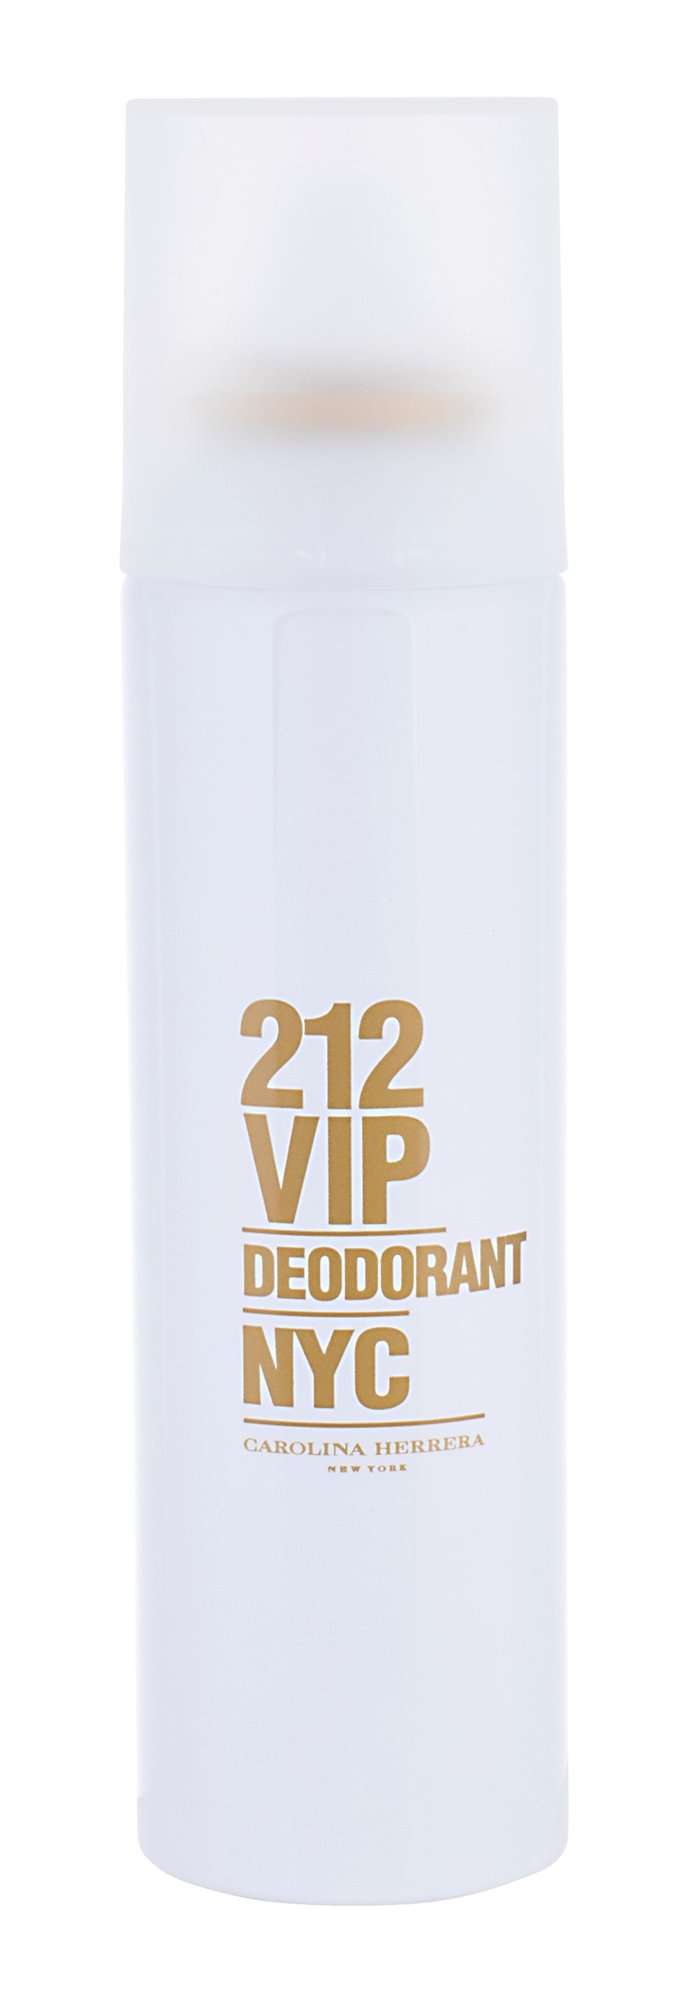 Carolina Herrera 212 VIP  Deodorant, W, 150 ml